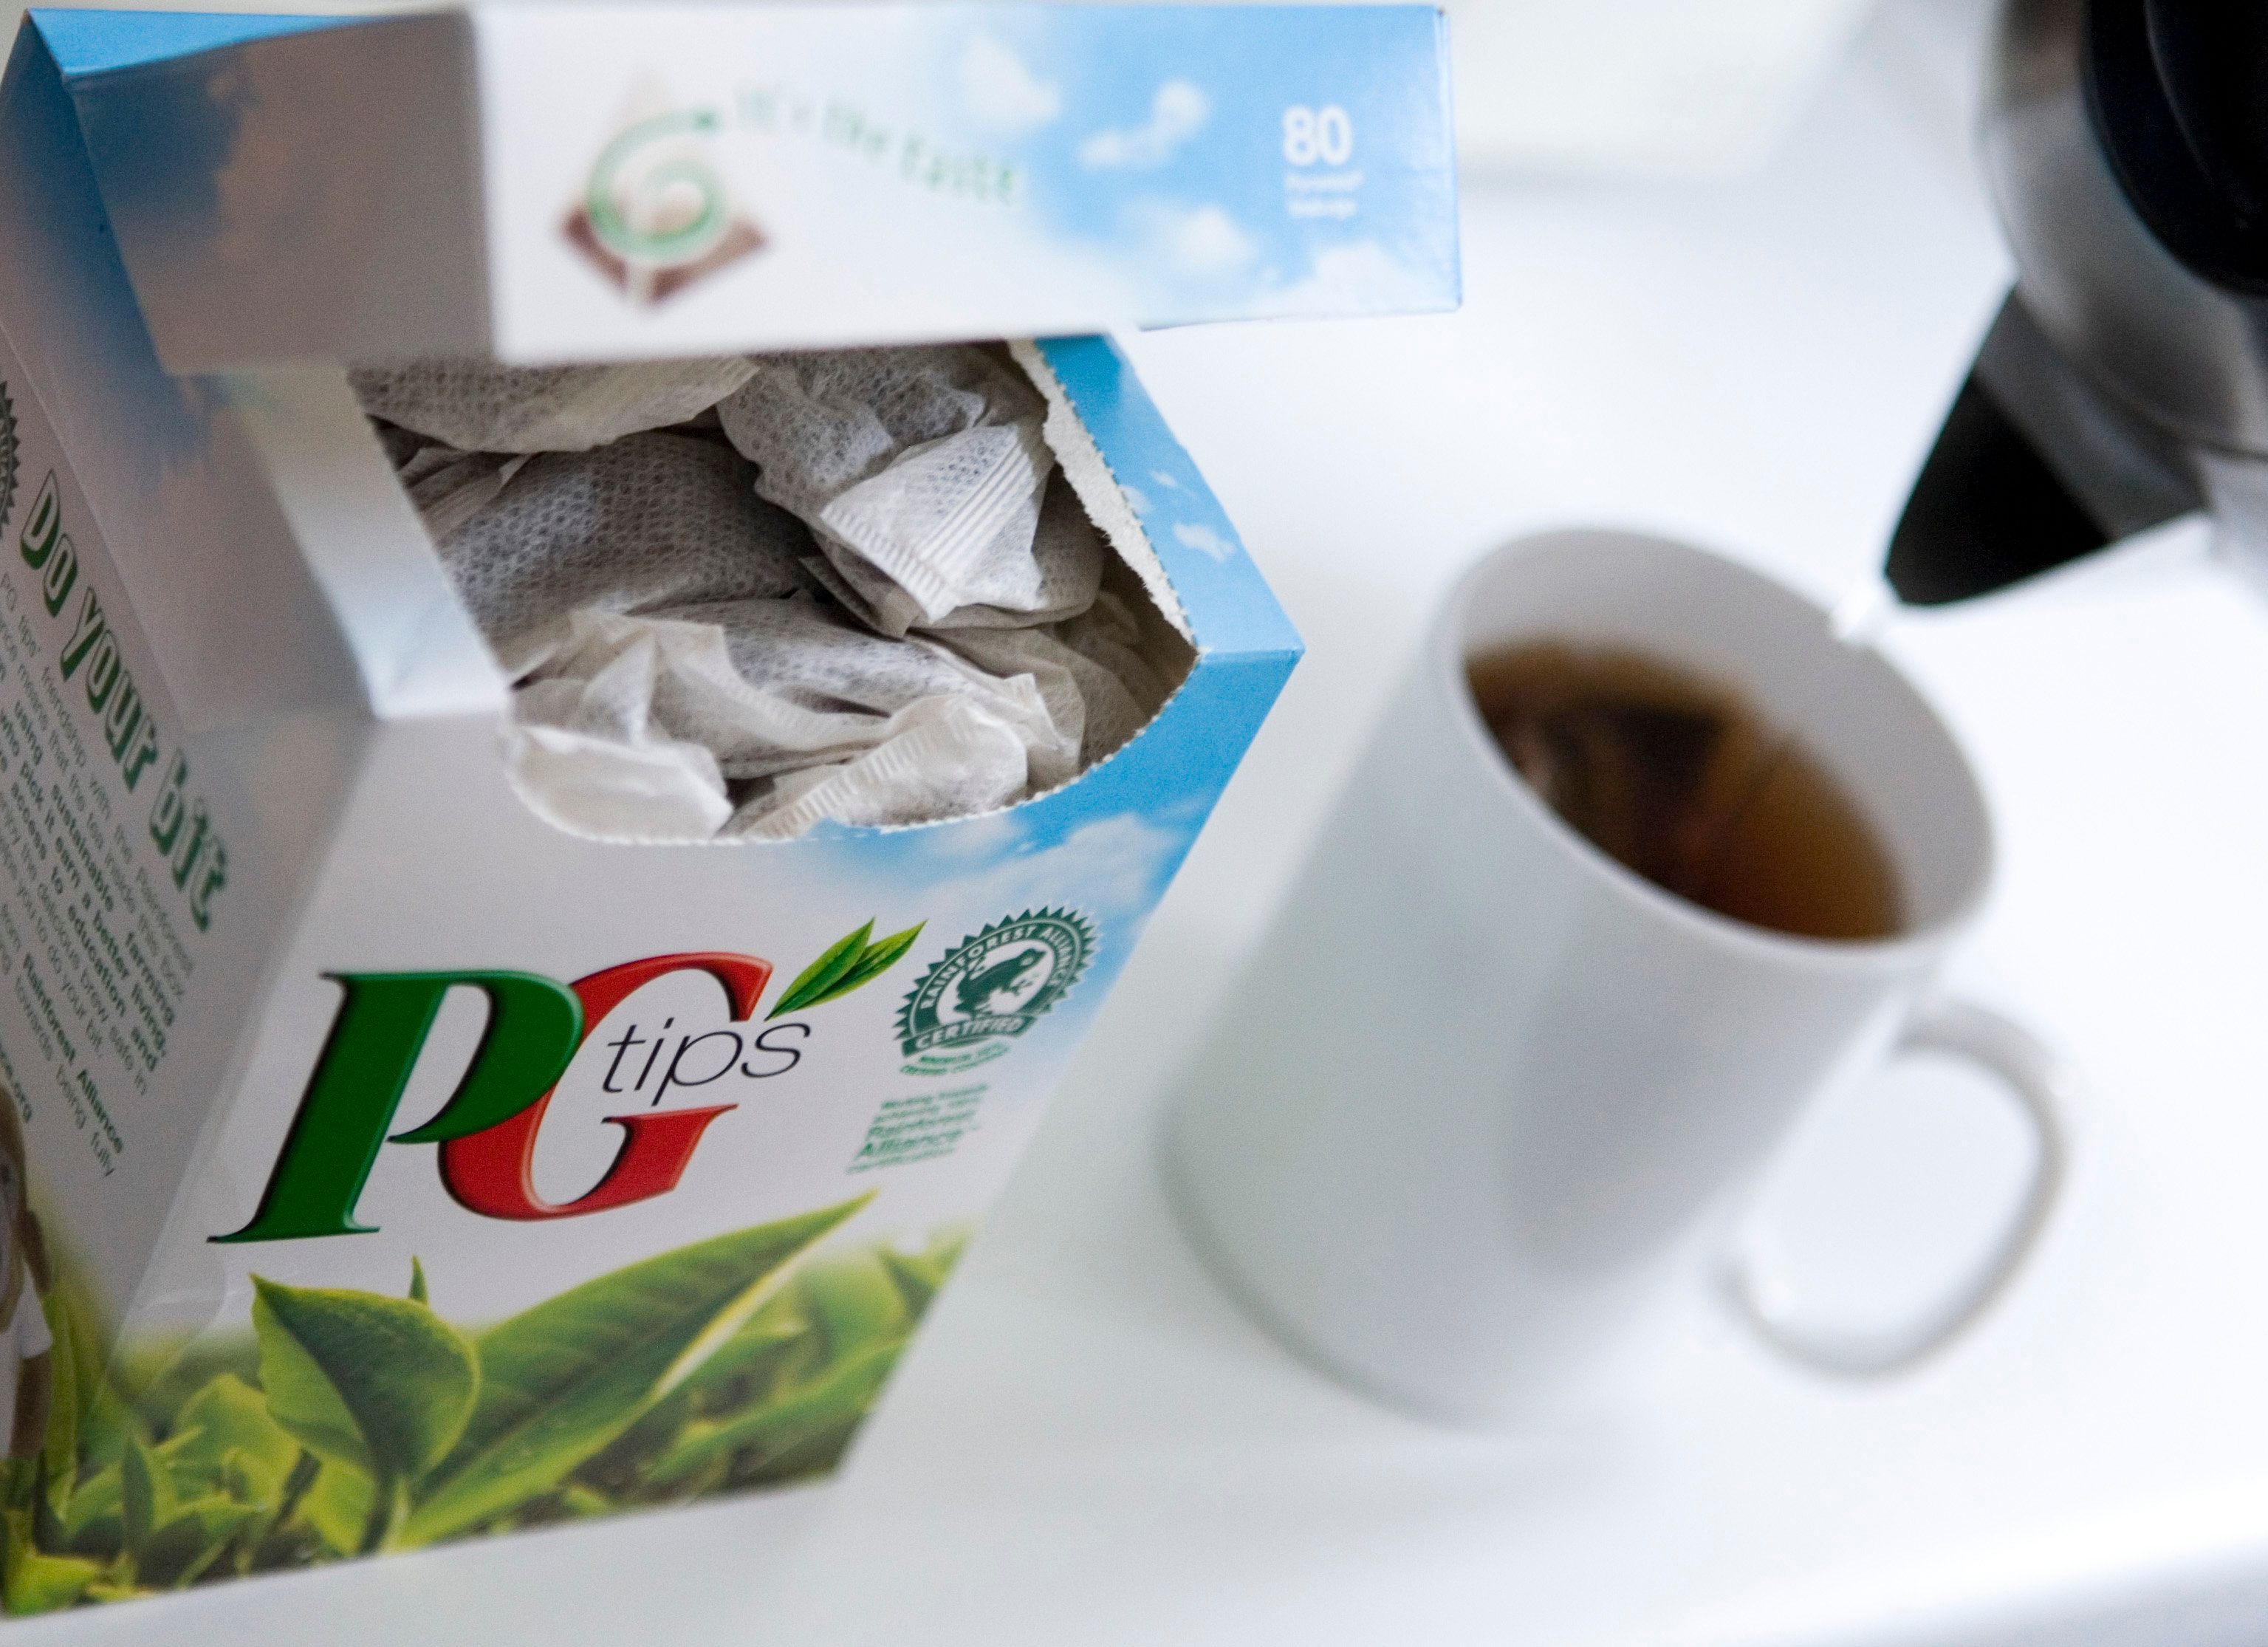 PG Tips Launches Plastic-Free Tea Bags That Are 100%